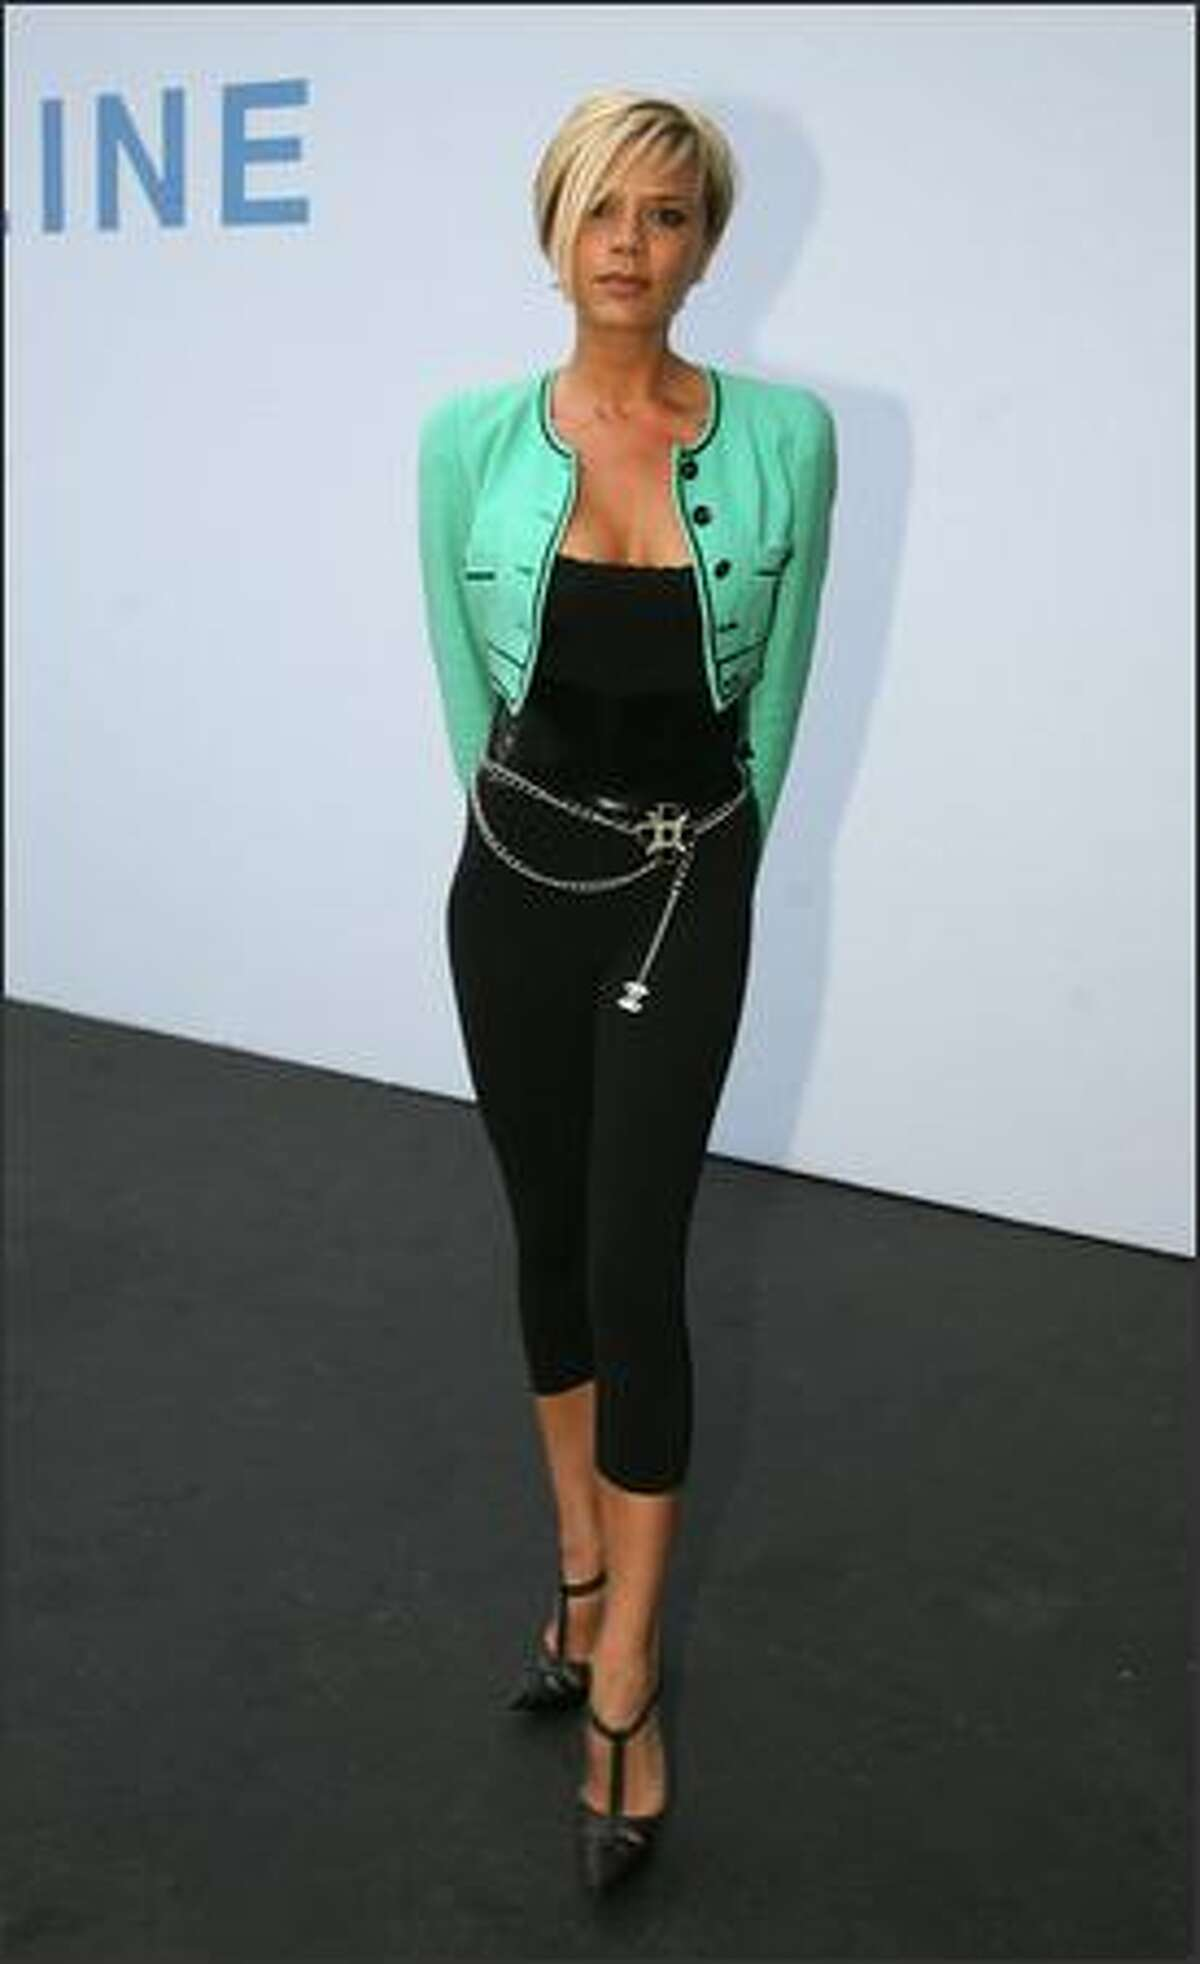 Victoria Beckham, wife of British soccer star David Beckham arrives at the 2007/08 Chanel Cruise Show presented by Karl Lagerfeld at Santa Monica airport, California. She is on top of Mr. Blackwell's 48th annual worst-dressed list.